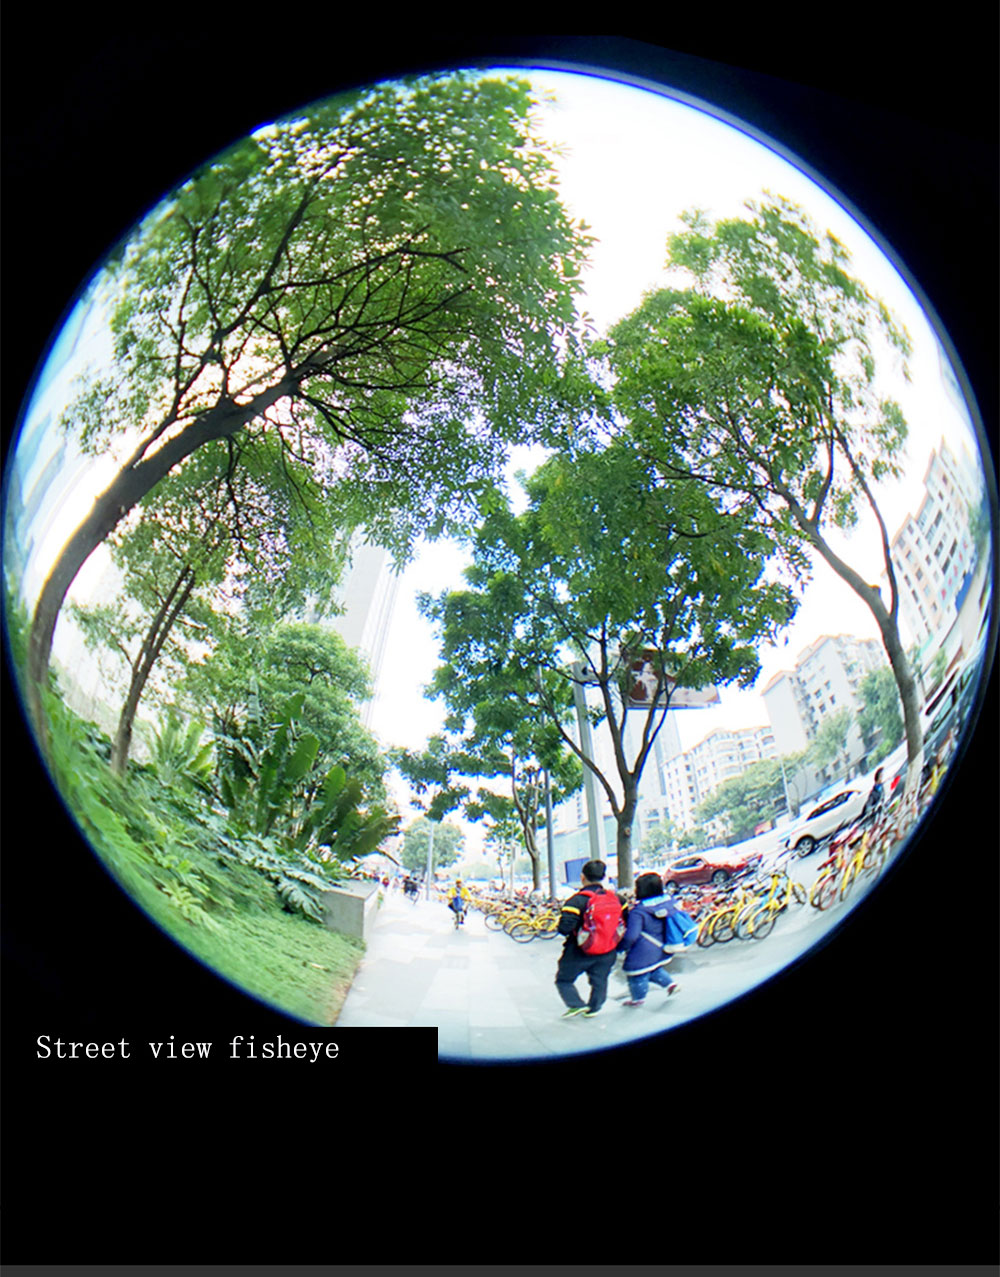 new concept 96a75 d5eb7 KAPKUR Mobile Phone Lens Fisheye Lens Suitable for Round Scenery for iPhone  7